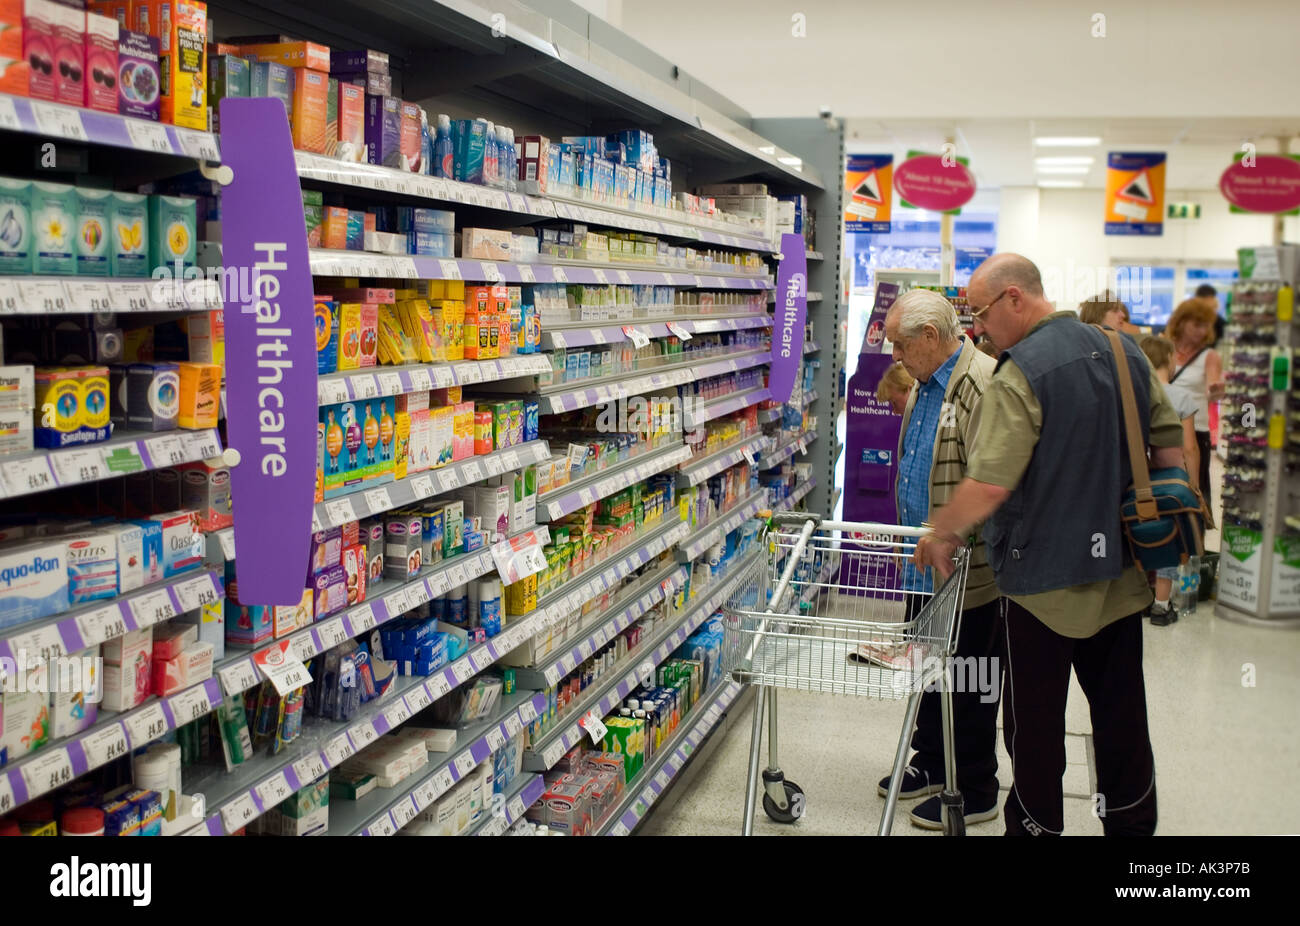 Products elderly care products elderly care products product on - An Elderly Gentleman Choosing Health Care Products In A Supermarket Assisted By A Younger Man